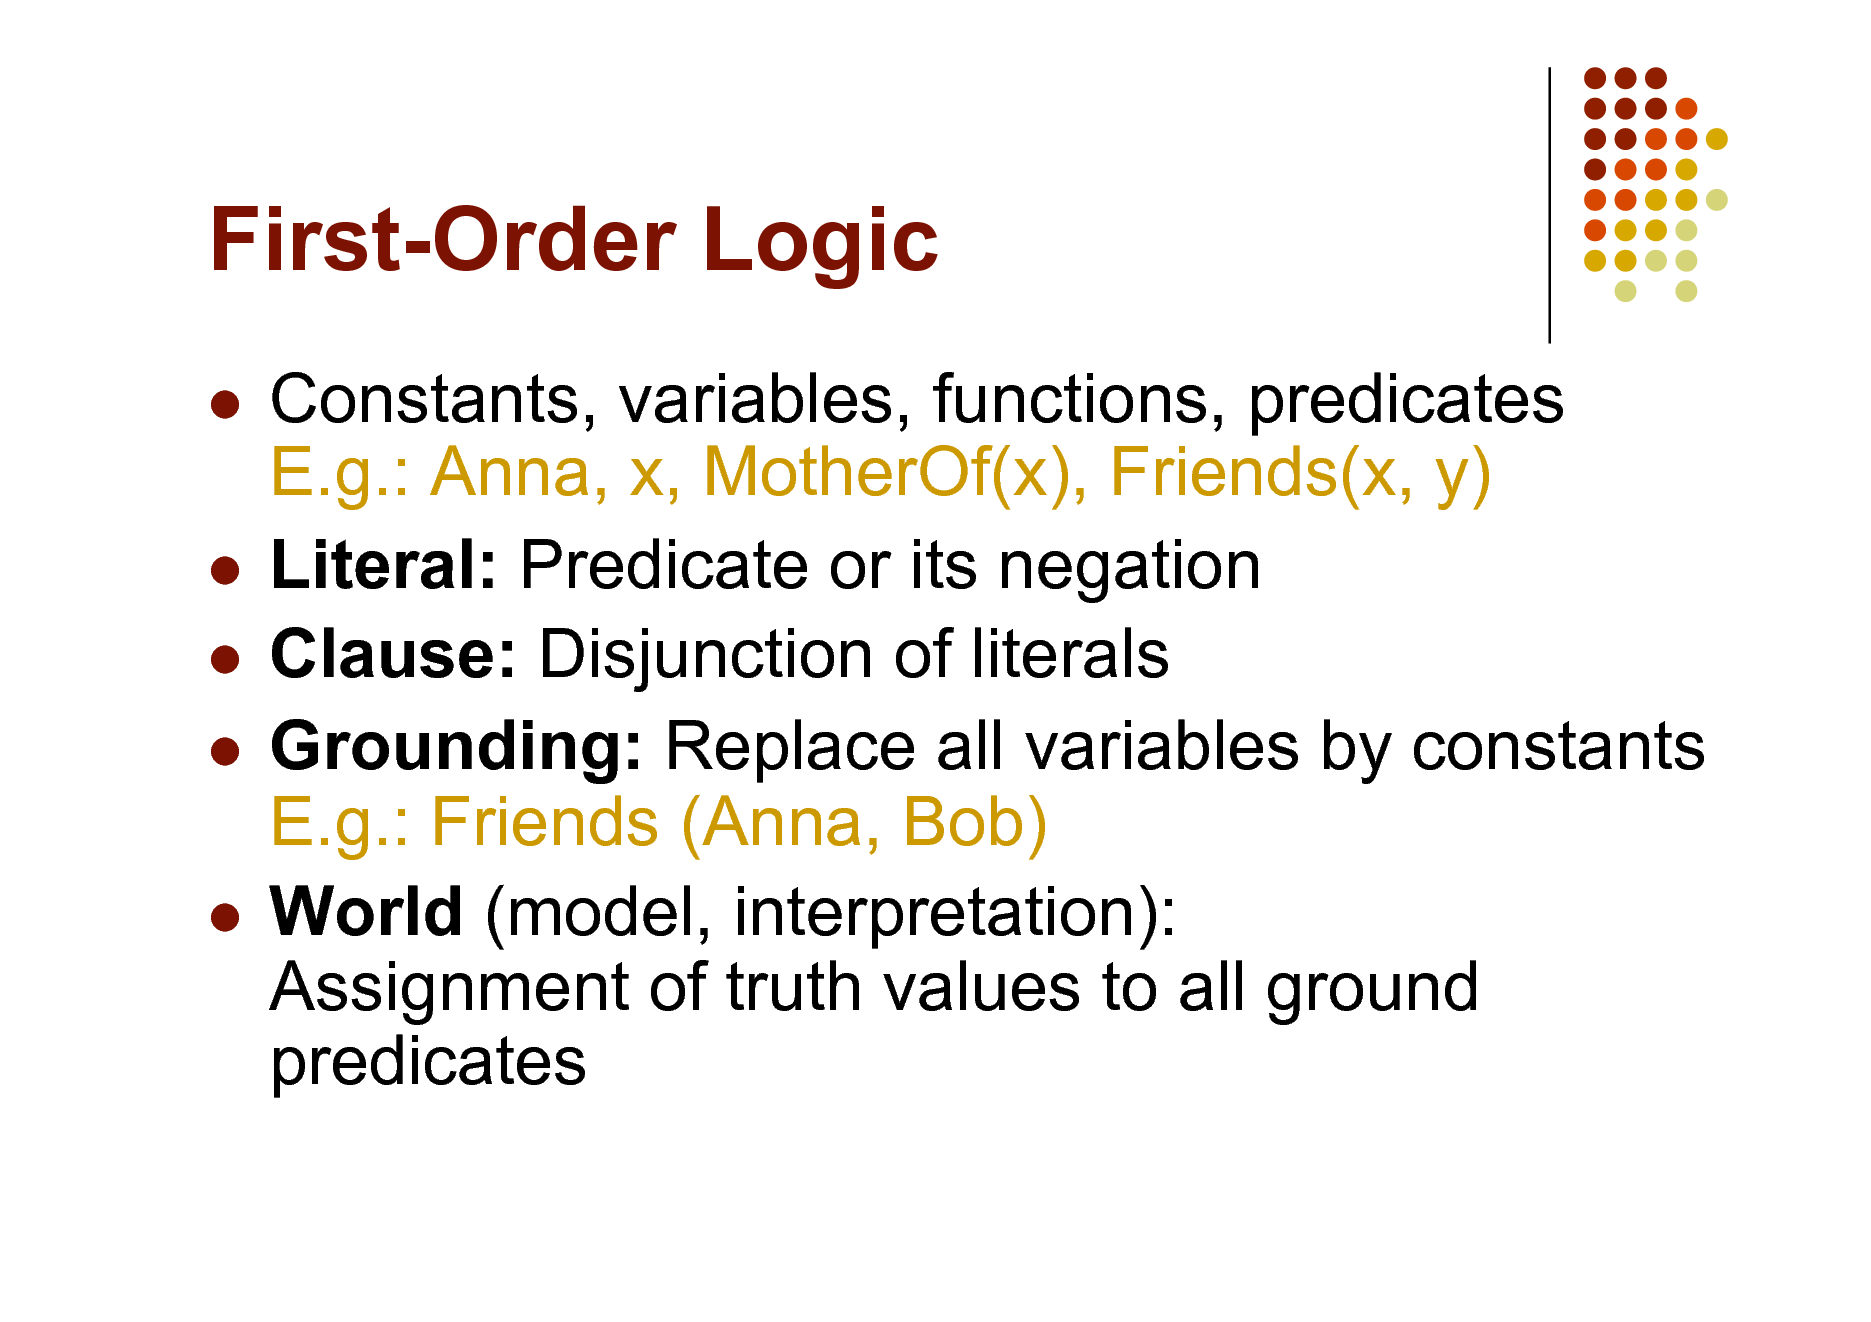 Slide: First-Order Logic Constants, variables, functions, predicates E.g.: Anna, x, MotherOf(x), Friends(x, y)  Literal: Predicate or its negation  Clause: Disjunction of literals  Grounding: Replace all variables by constants E.g.: Friends (Anna, Bob)  World (model, interpretation): Assignment of truth values to all ground predicates